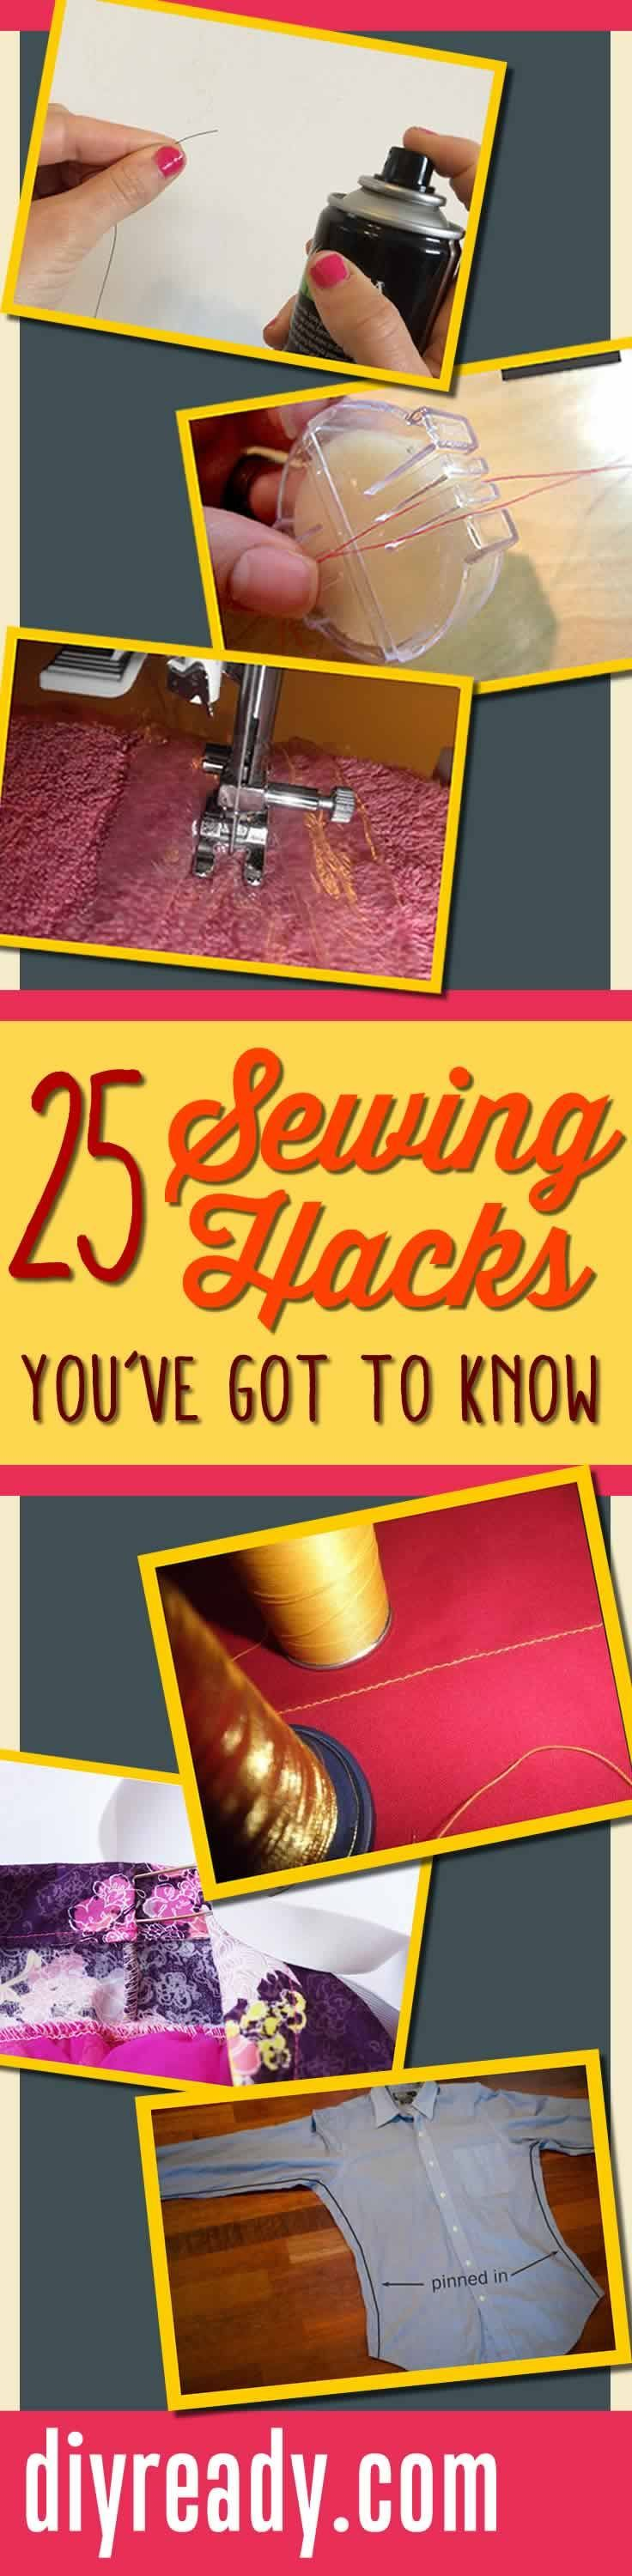 Sewing Projects and Sewing Crafts Tips http://diyready.com/25-sewing-hacks-you-wont-want-to-forget/ #diy #sewing #diyprojects #tutorials #crafts